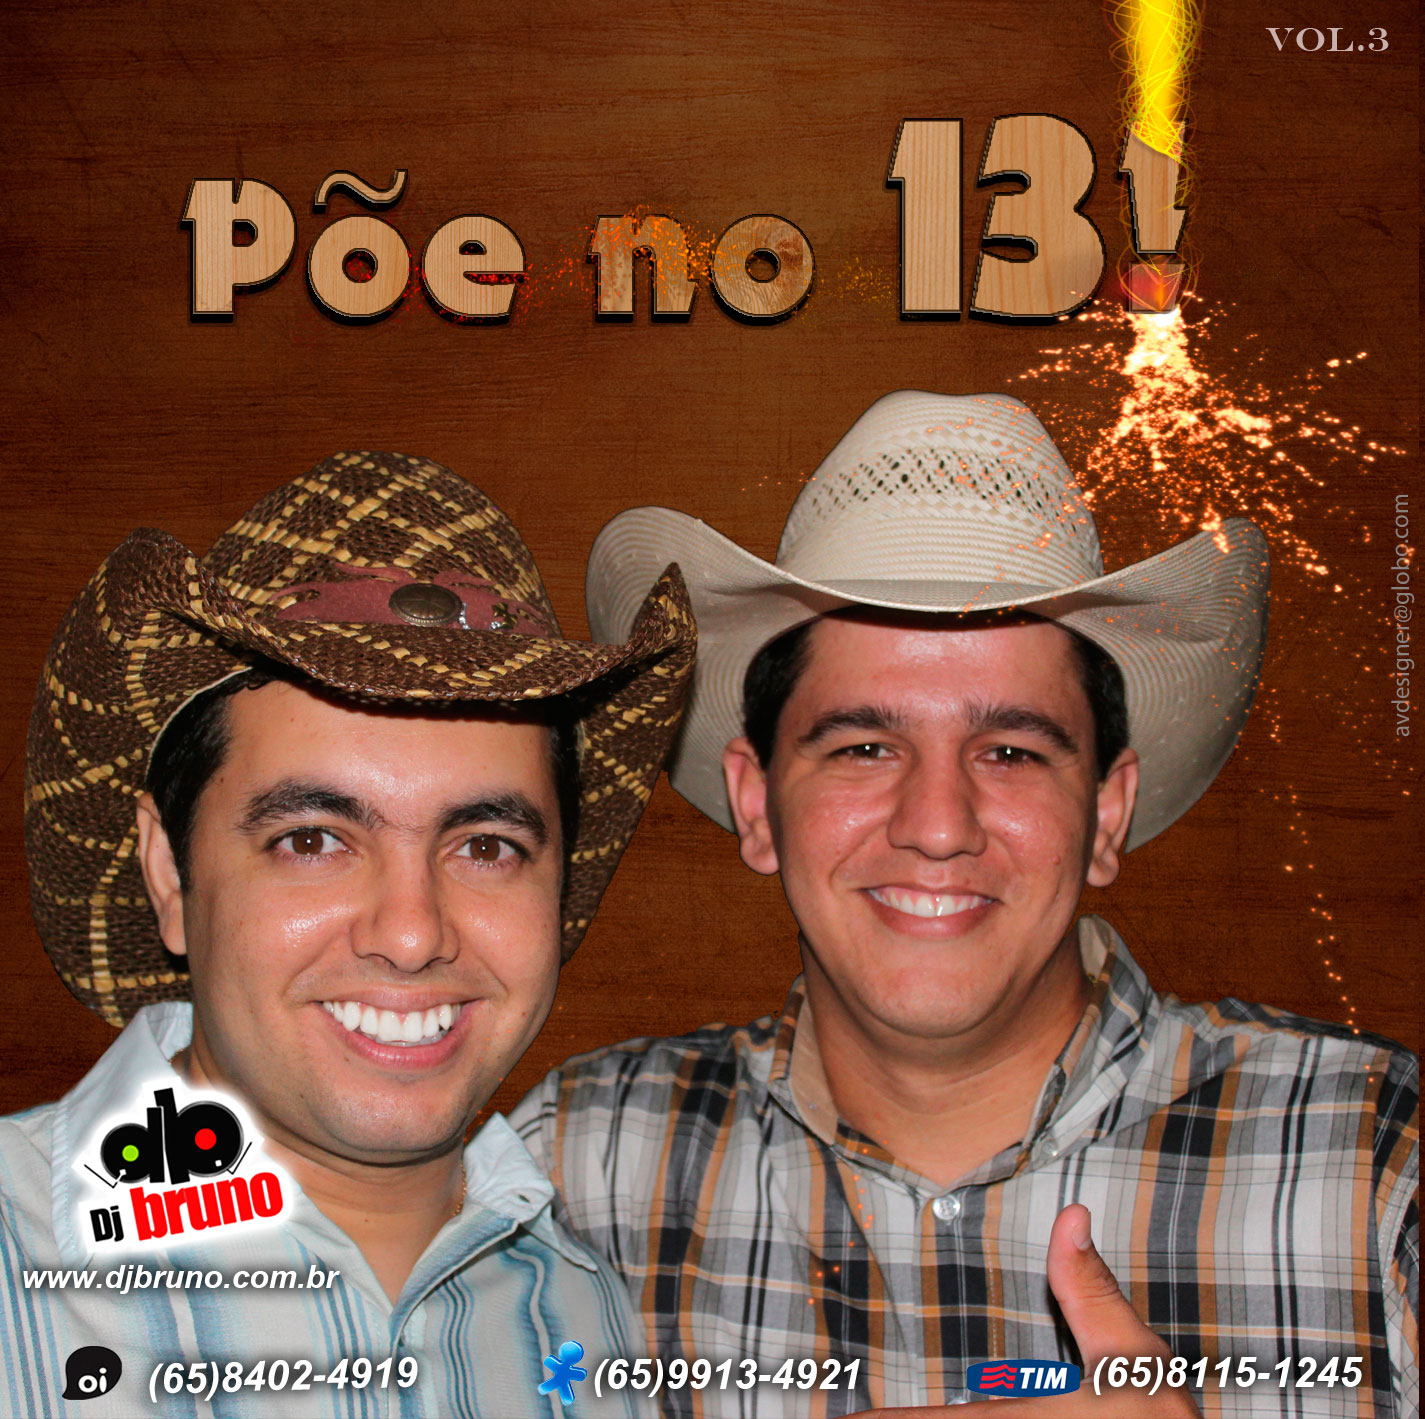 Dj Bruno Granado - P�e No 13 Vol.03